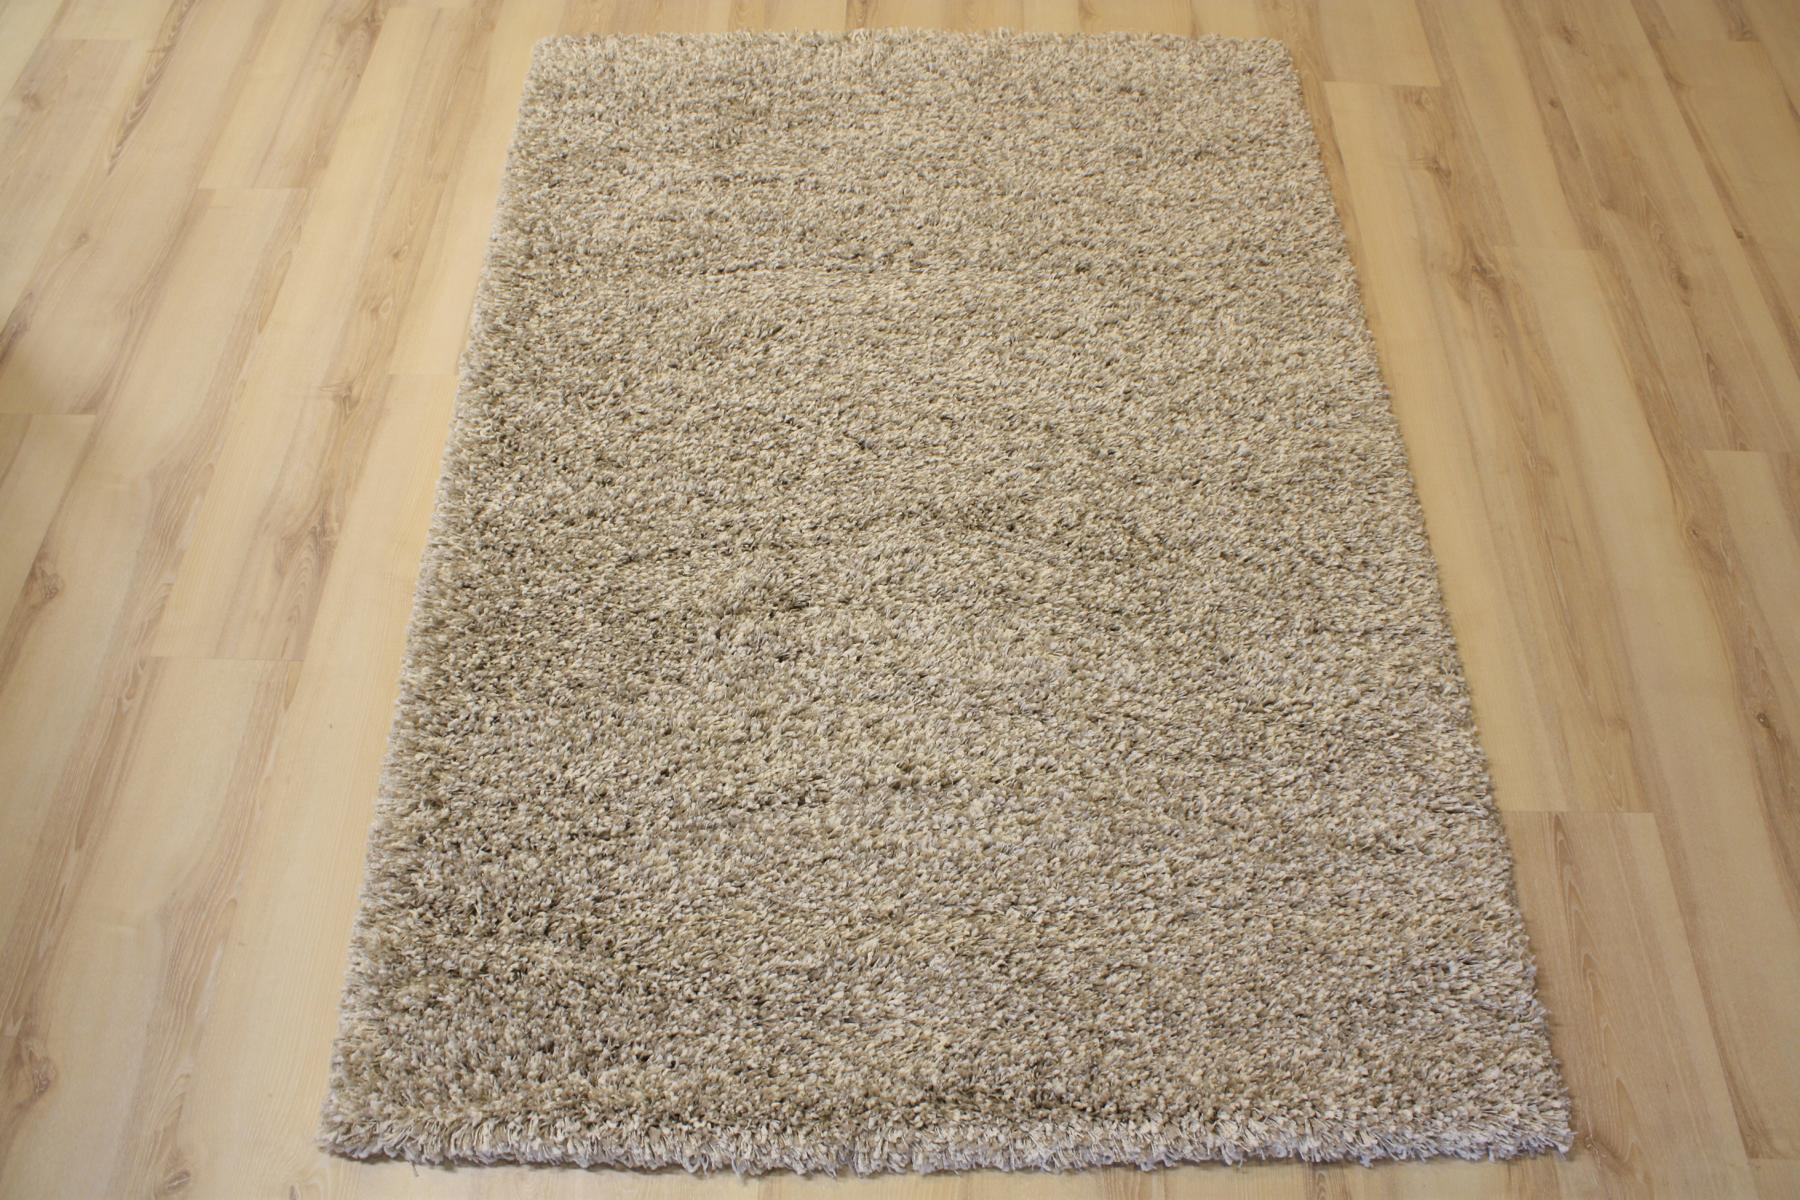 High Pile Carpet Rug High Pile 39001 Twilight 2211 White Linen 160x160cm Ebay